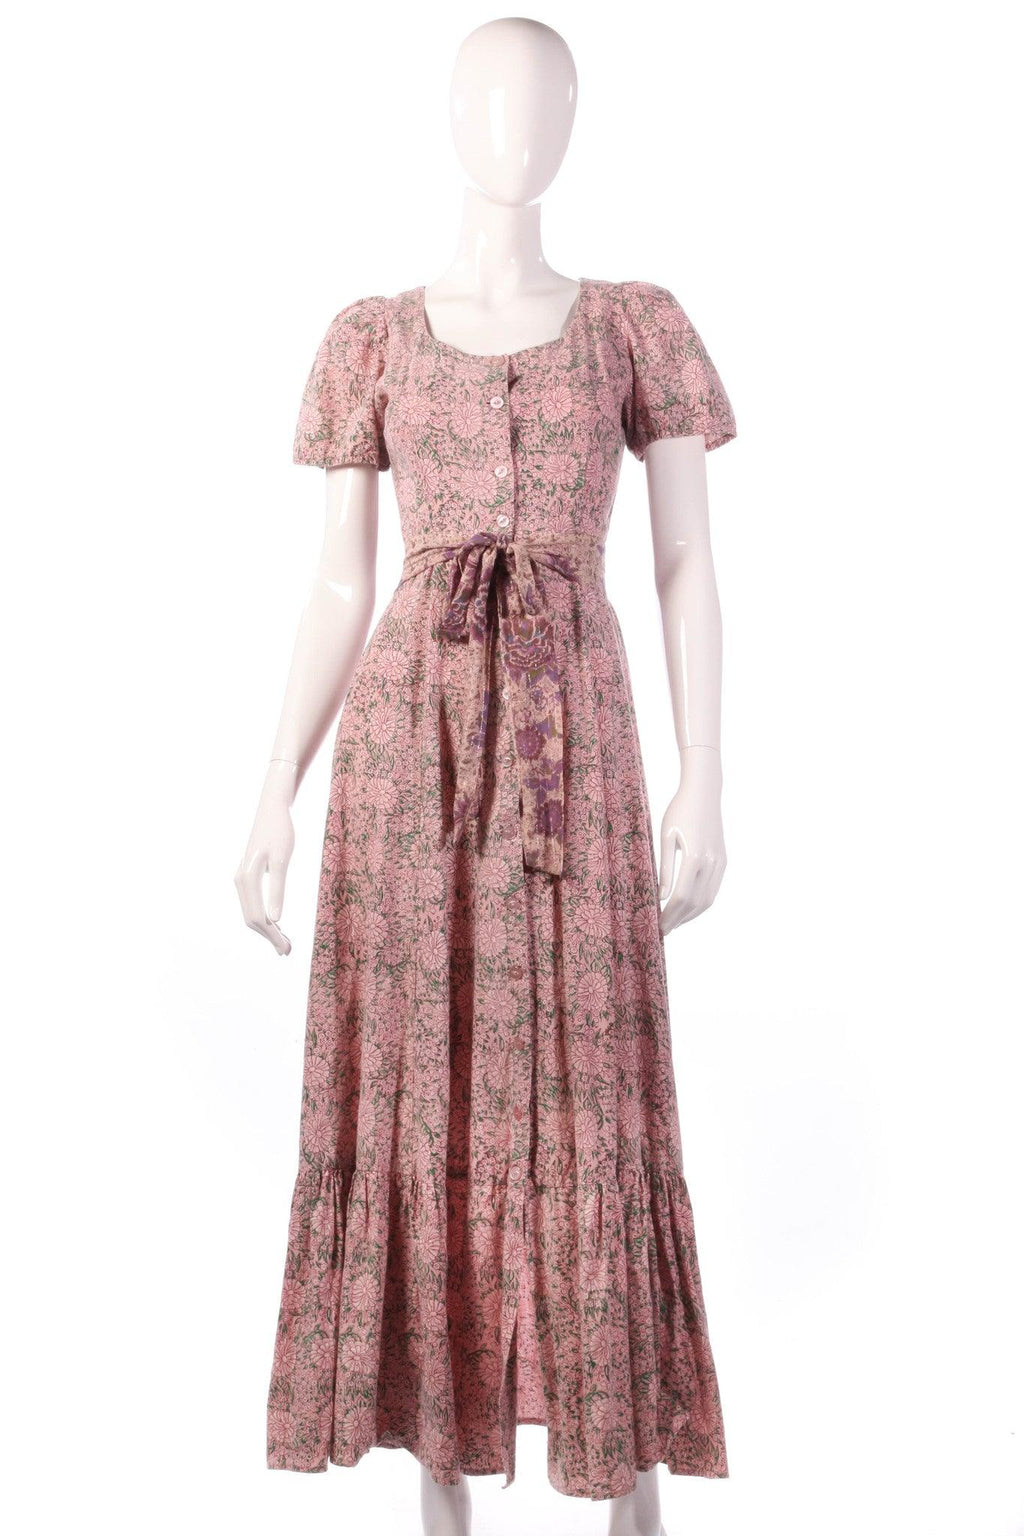 India Imports pink floral dress with tie belt